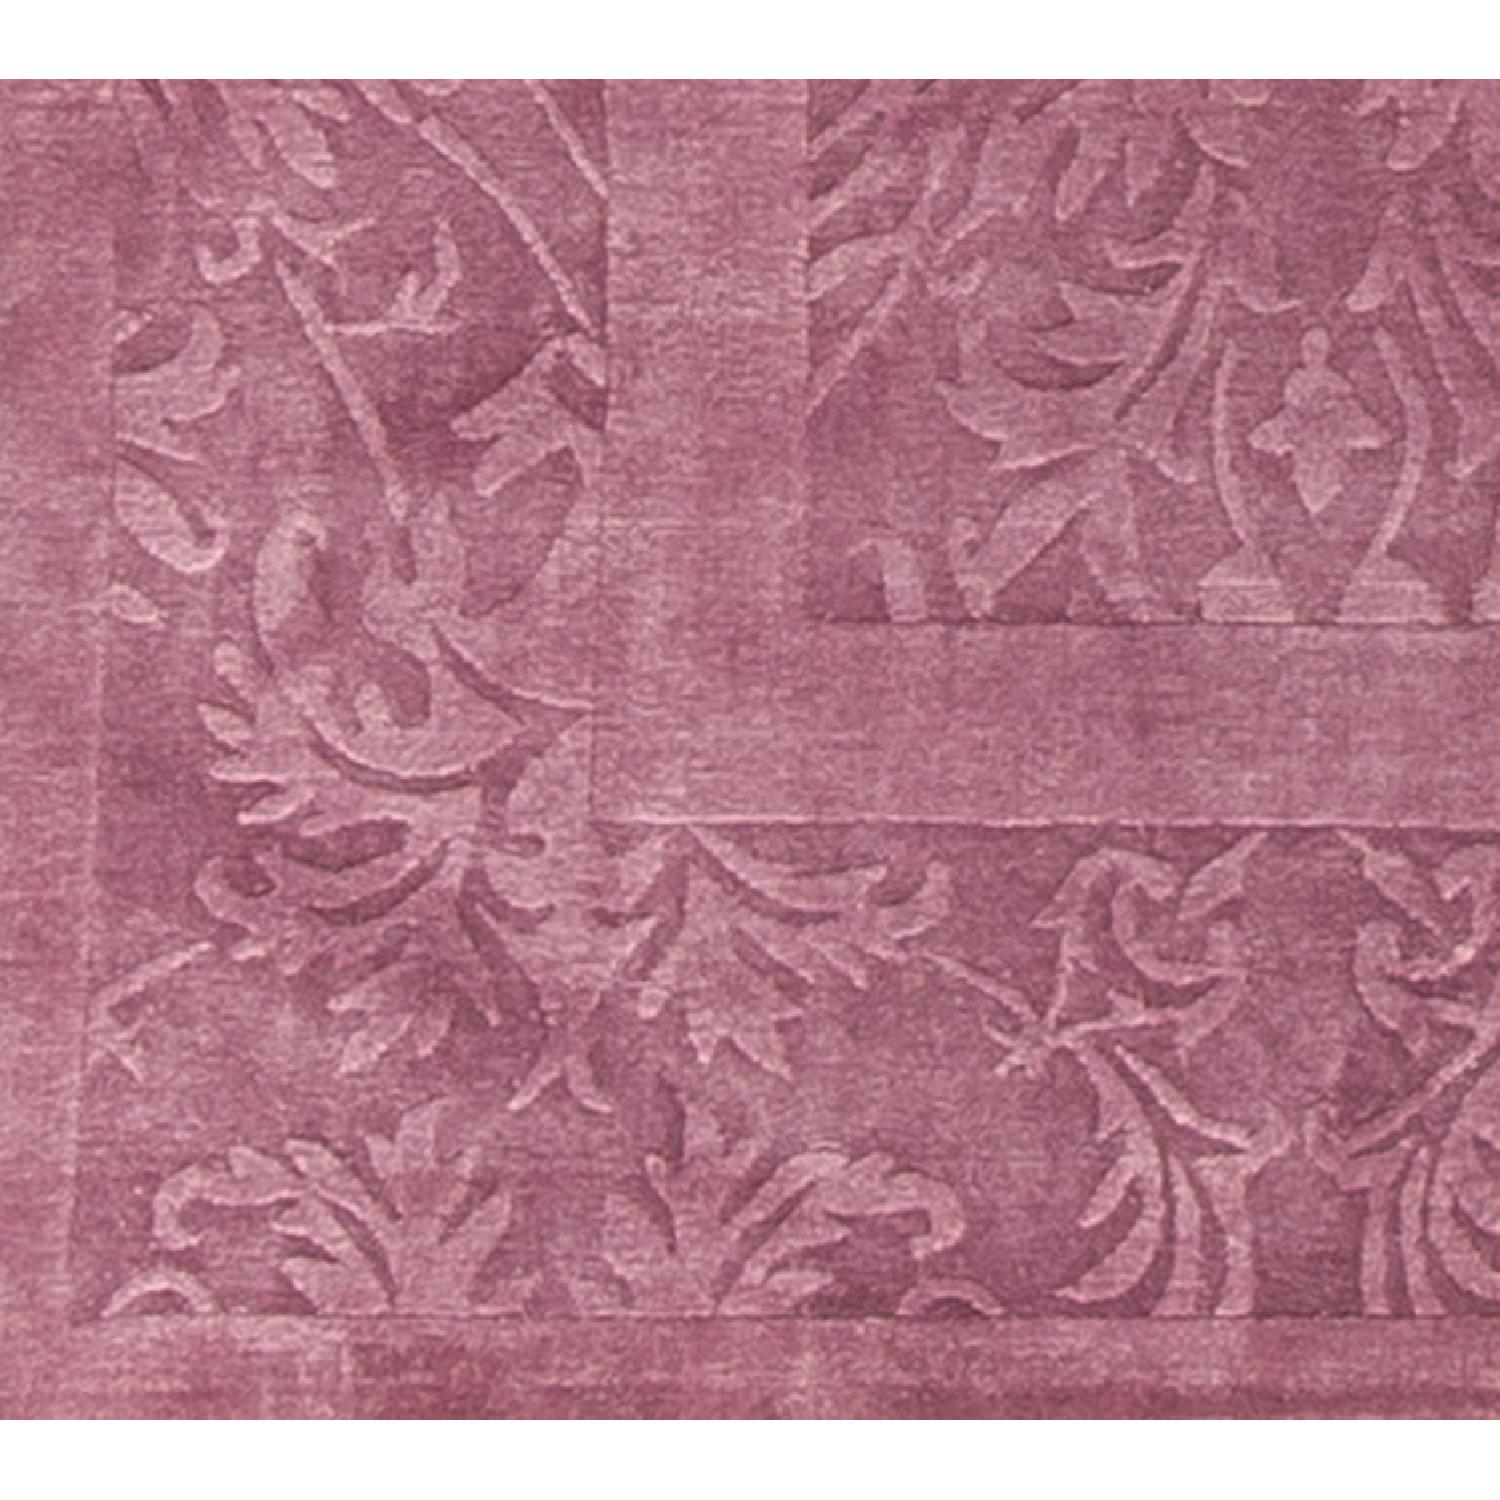 Modern Contemporary Hand Knotted Wool Rug in Plum - image-3